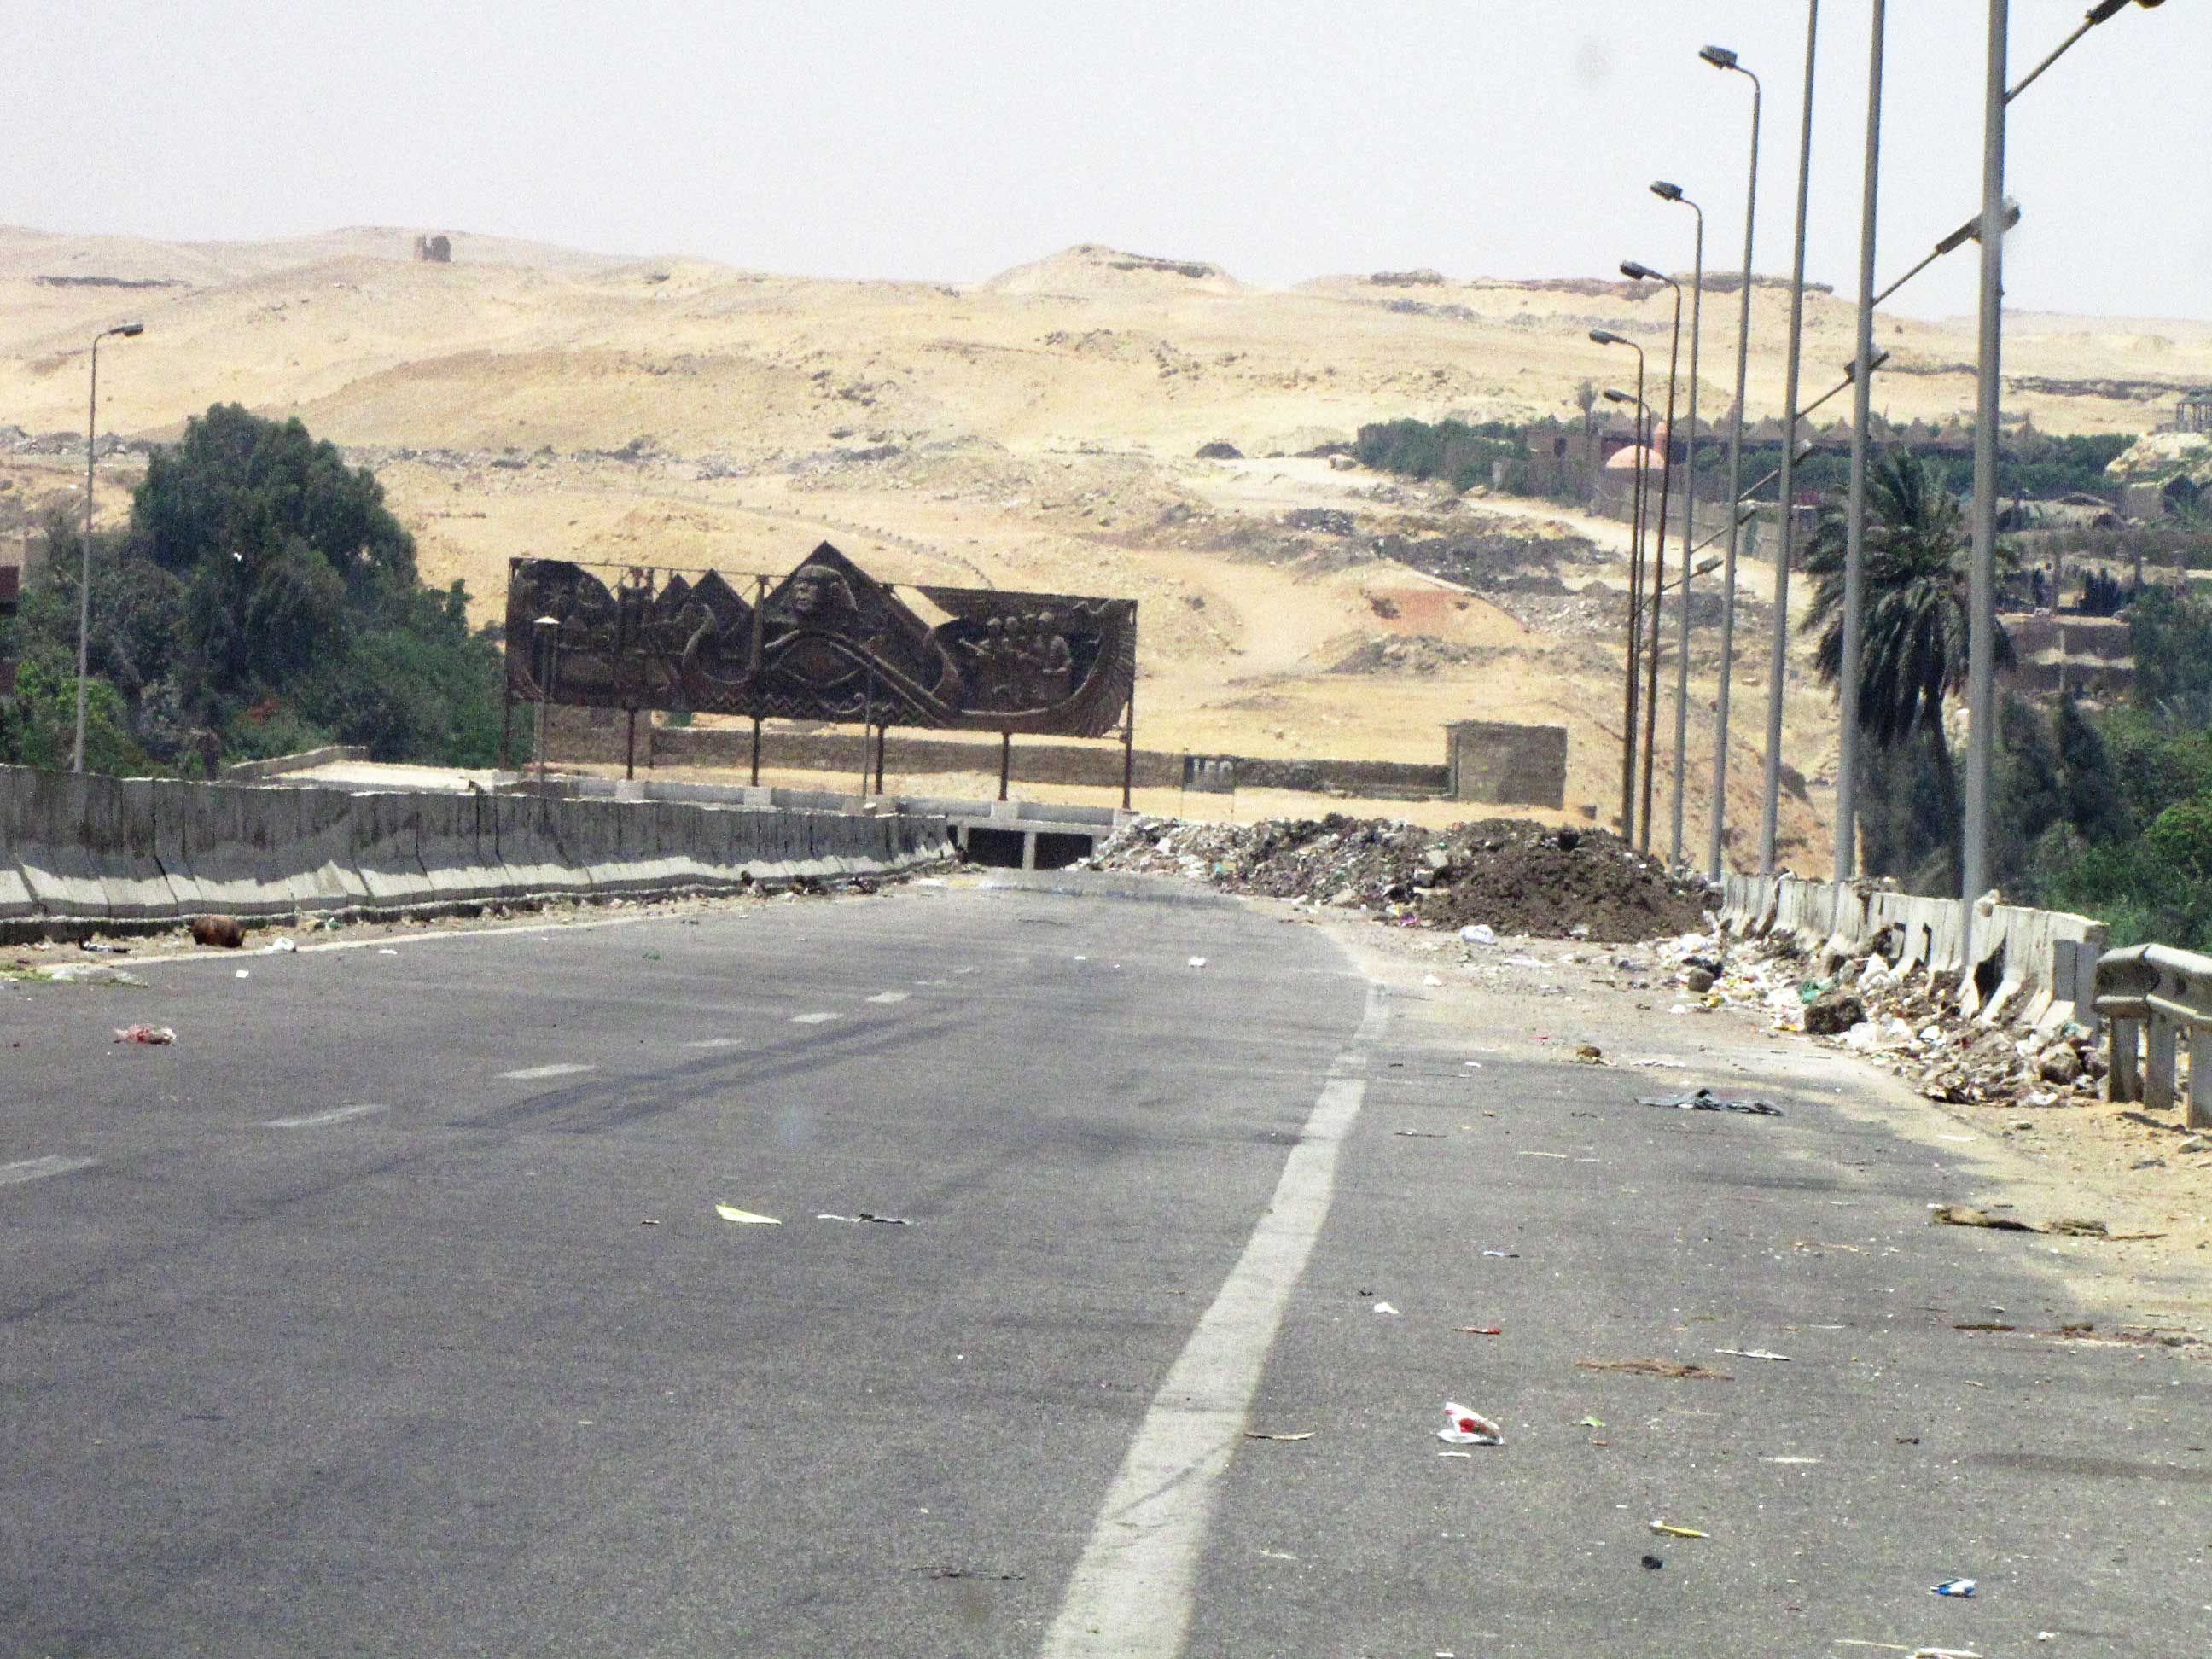 The road dead ends into the desert in Egypt